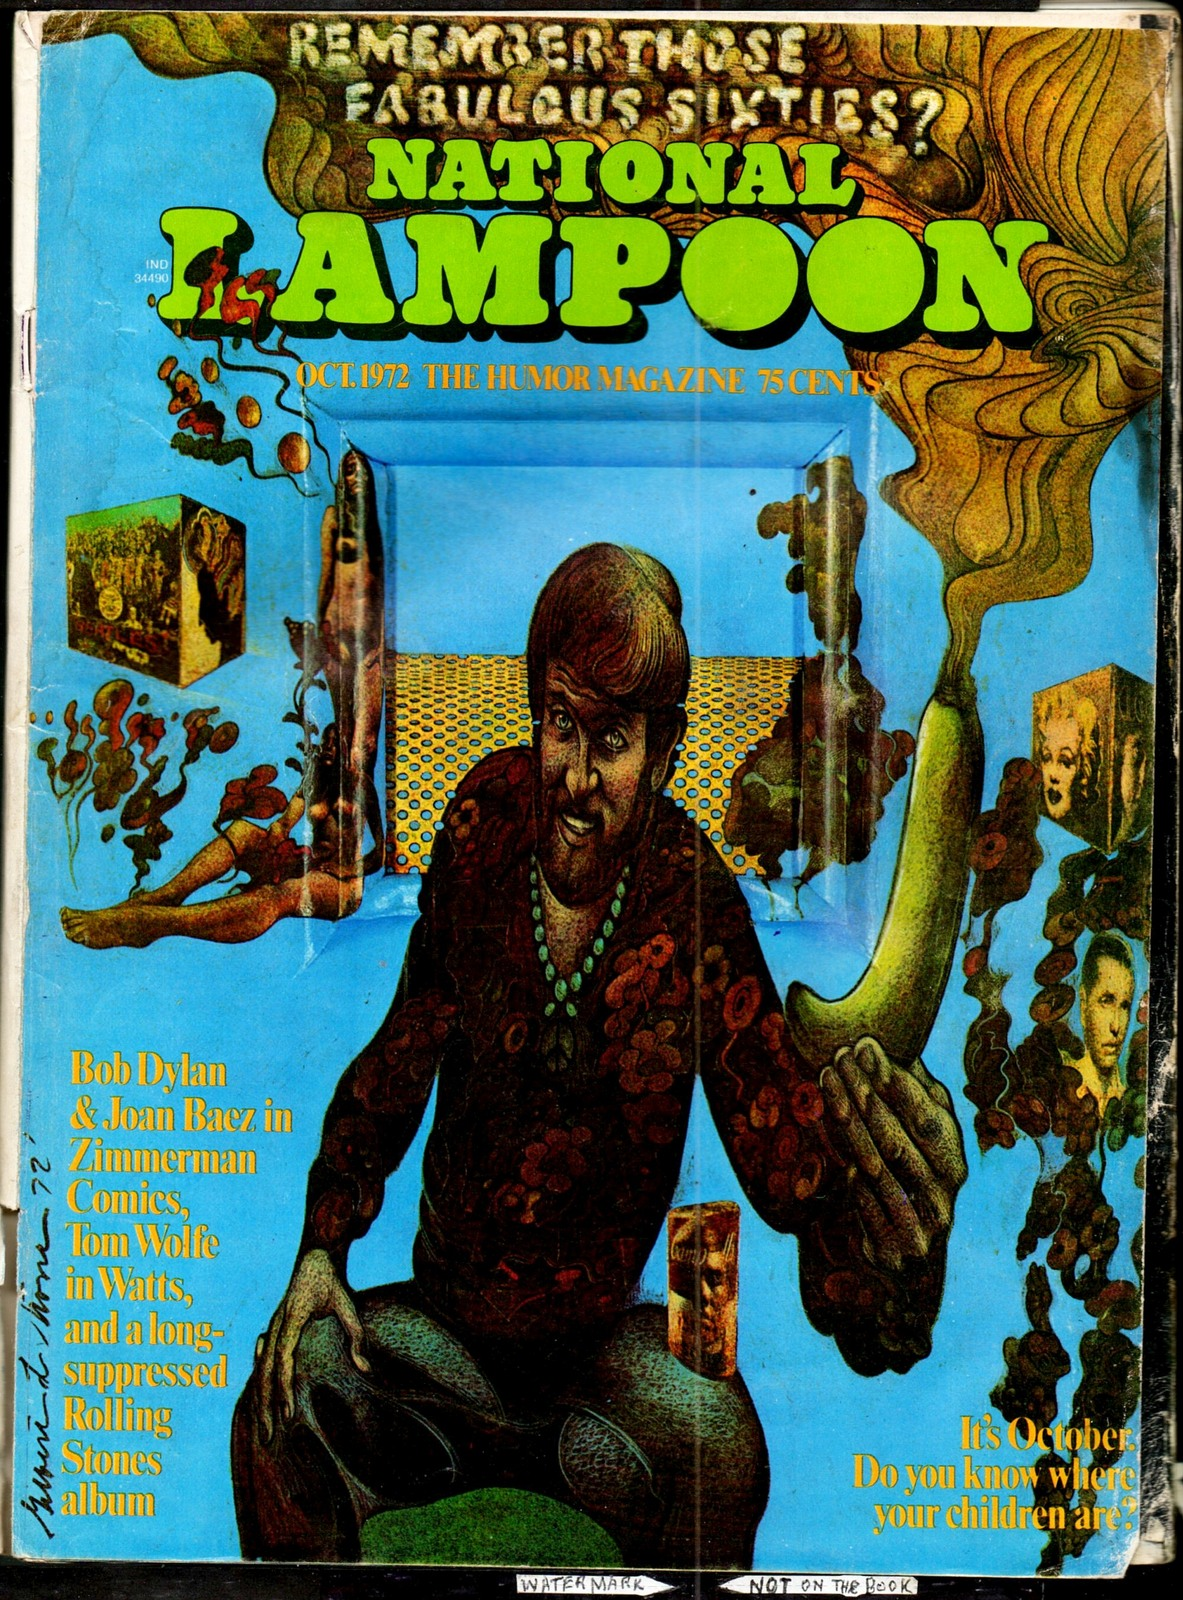 National Lampoon #31, Oct 1972 - '60s issue - Neal Adams' Zimmerman Comics